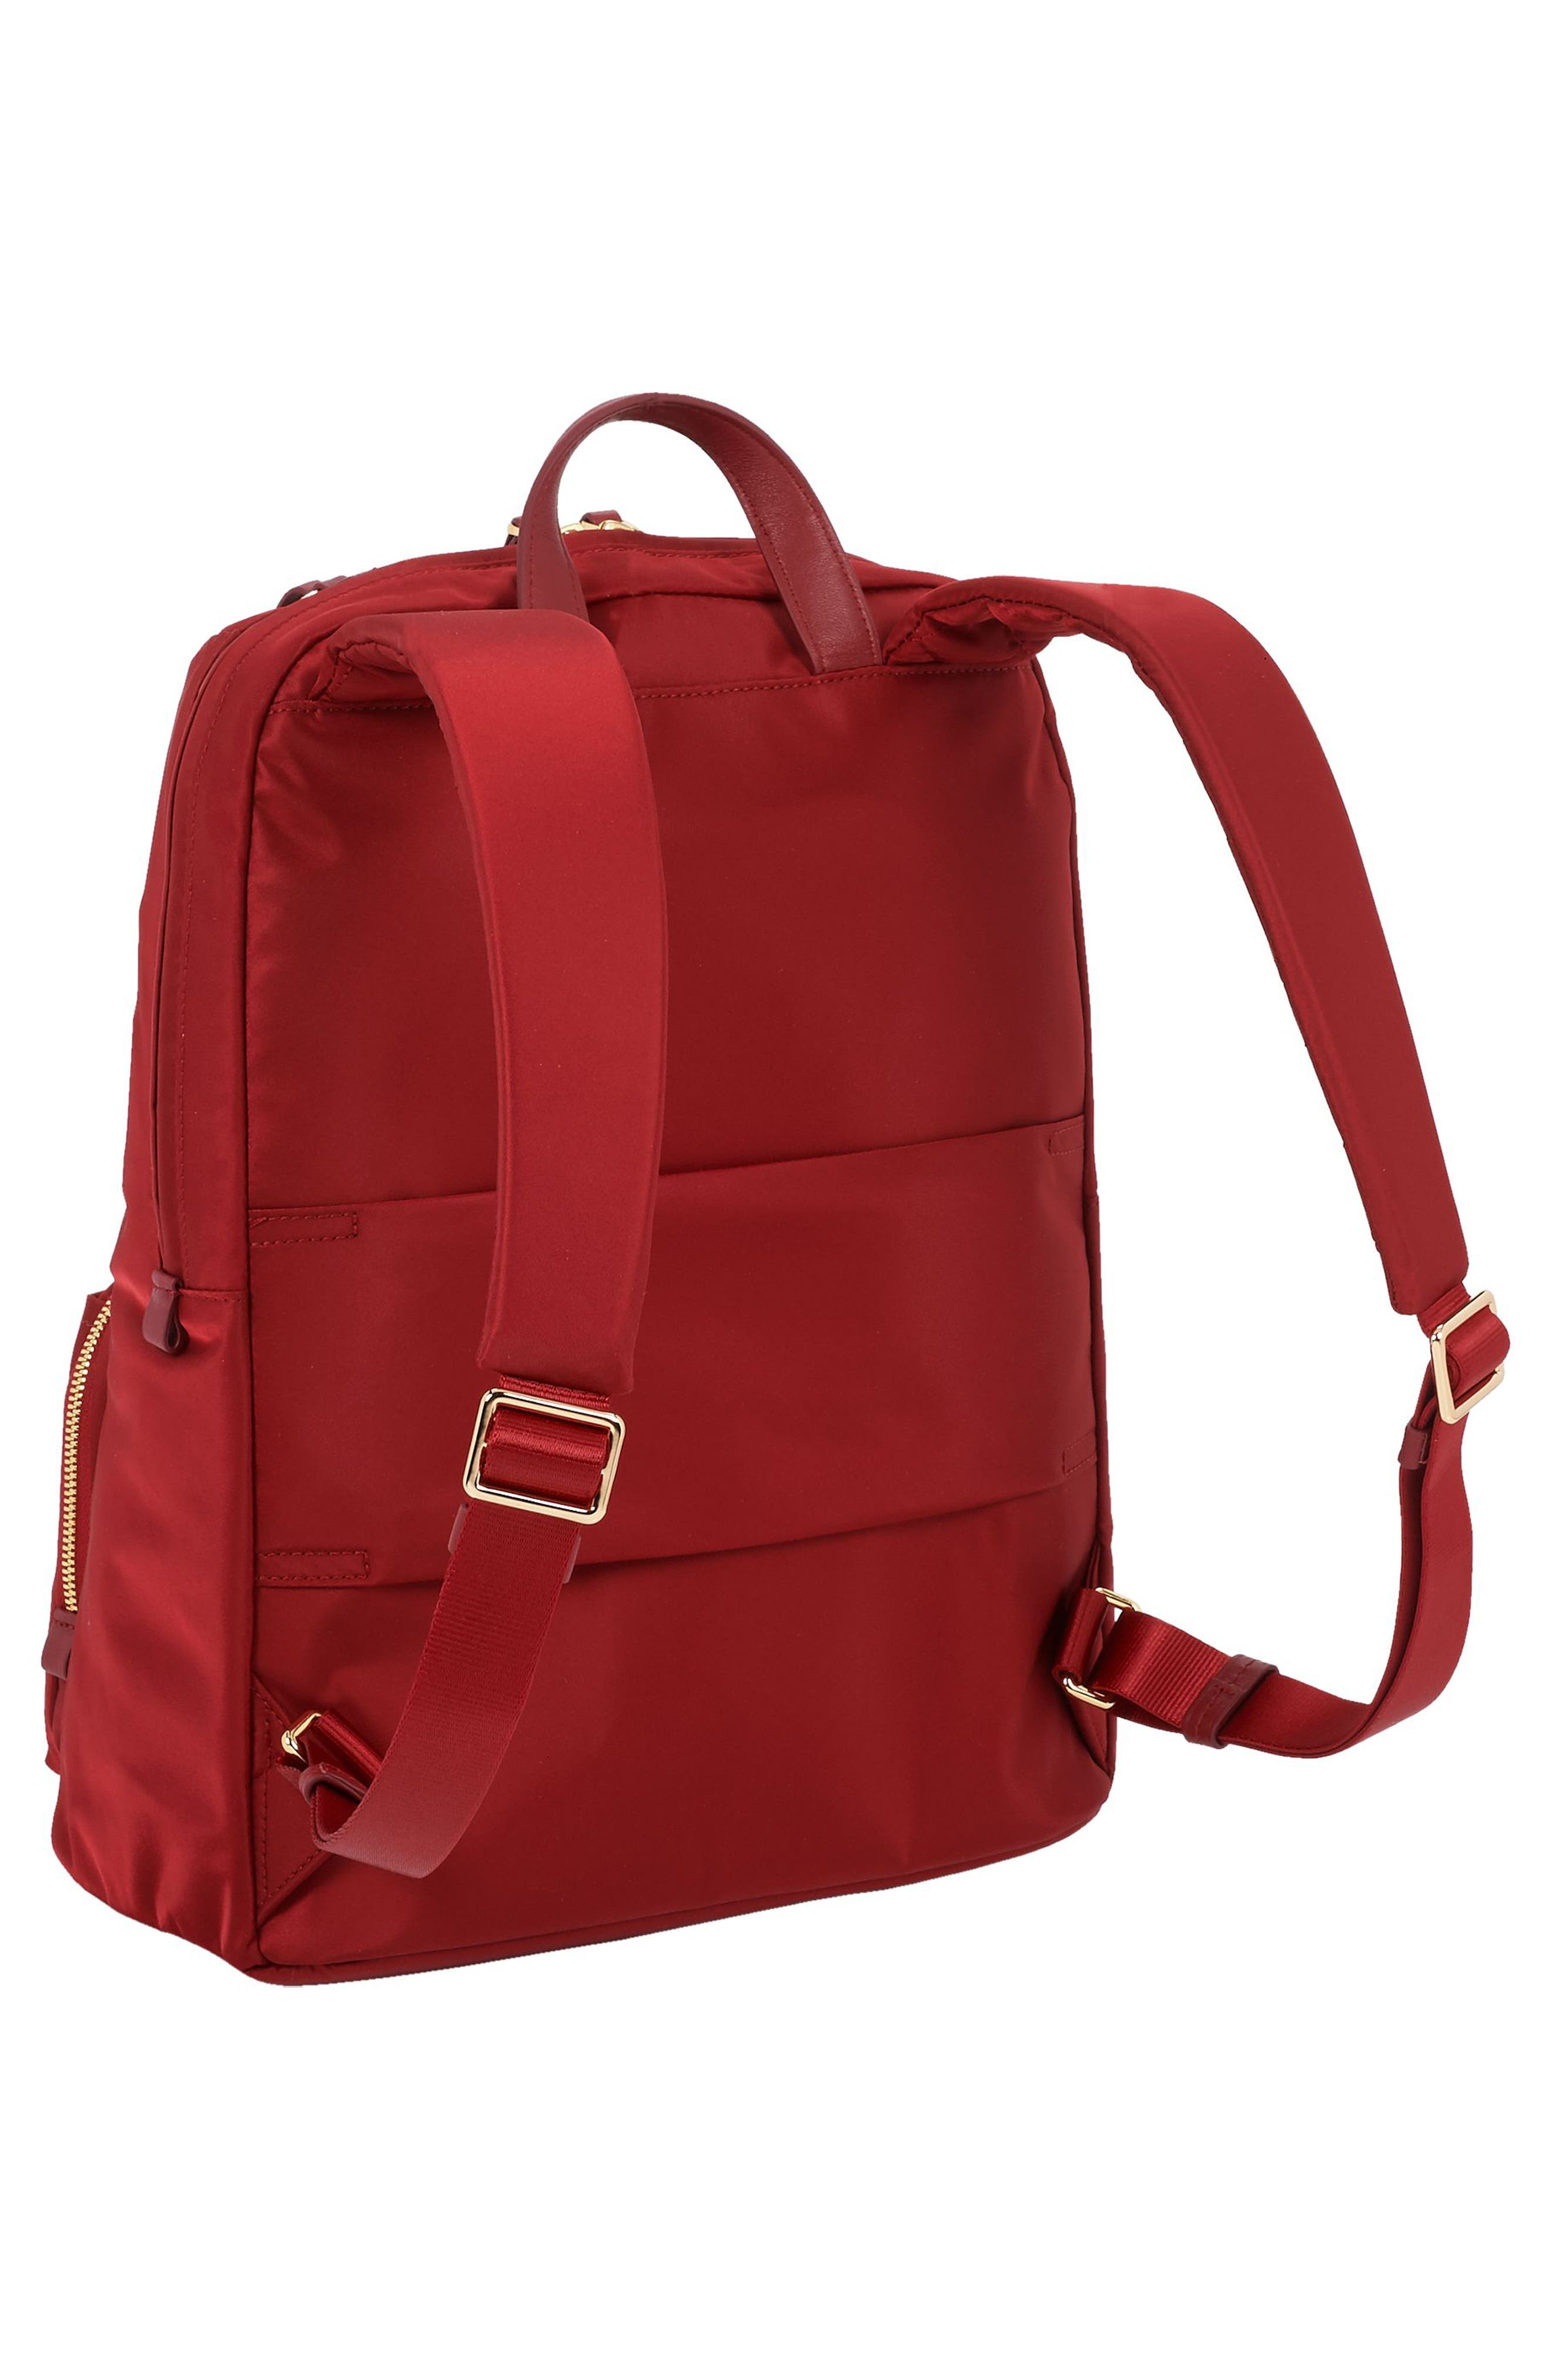 Voyageur Halle Nylon Backpack,                             Alternate thumbnail 3, color,                             Crimson